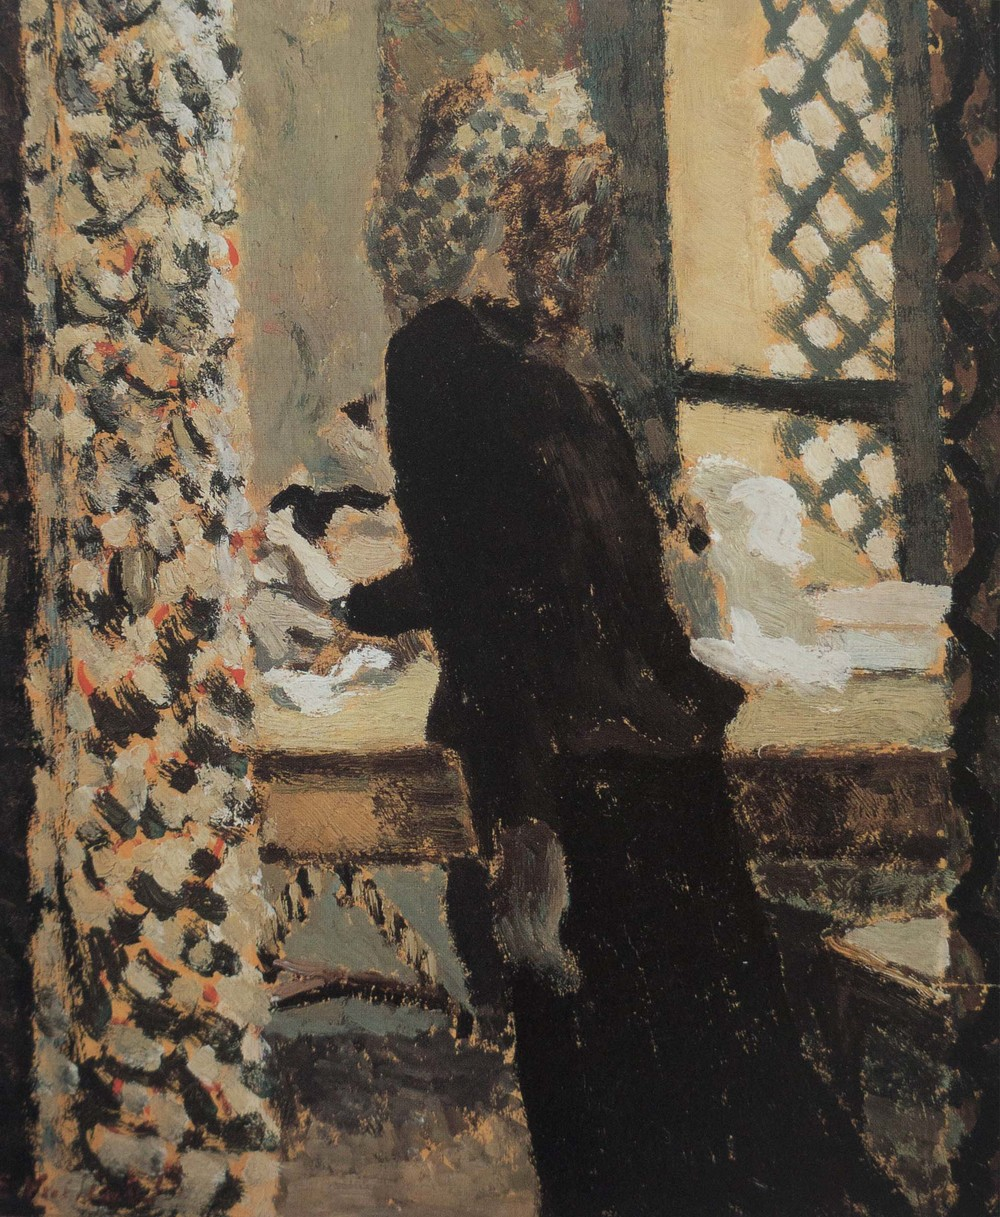 site-vuillard the mumps 9.5x8 in.jpg